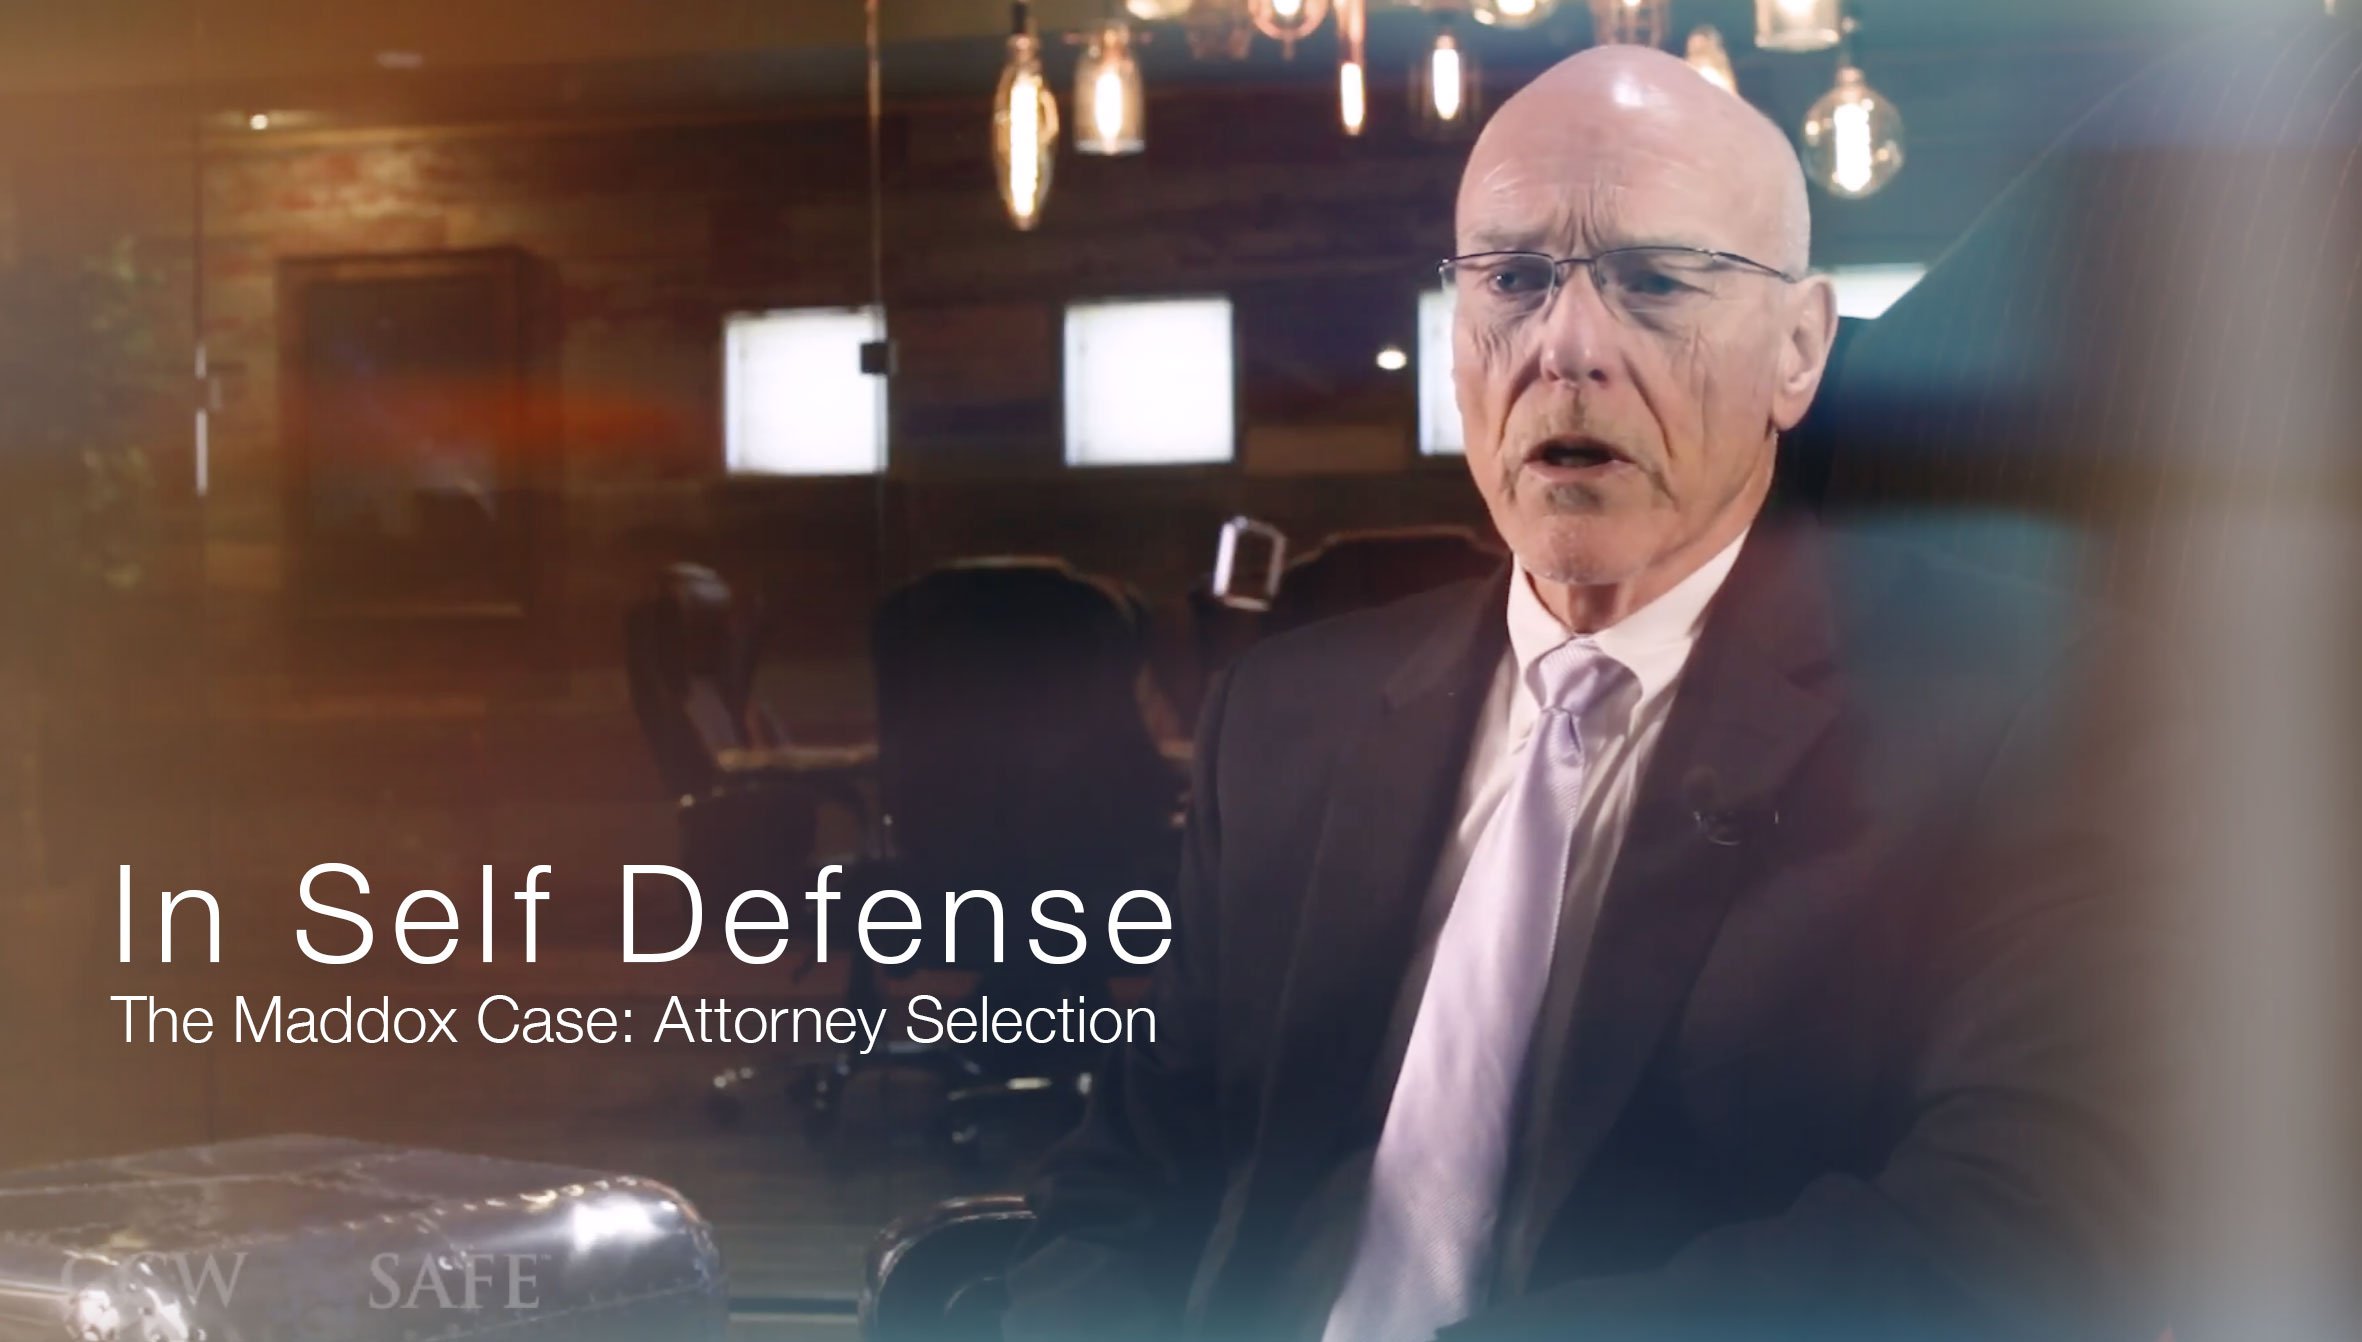 In Self Defense: The Maddox Case- Attorney Selection